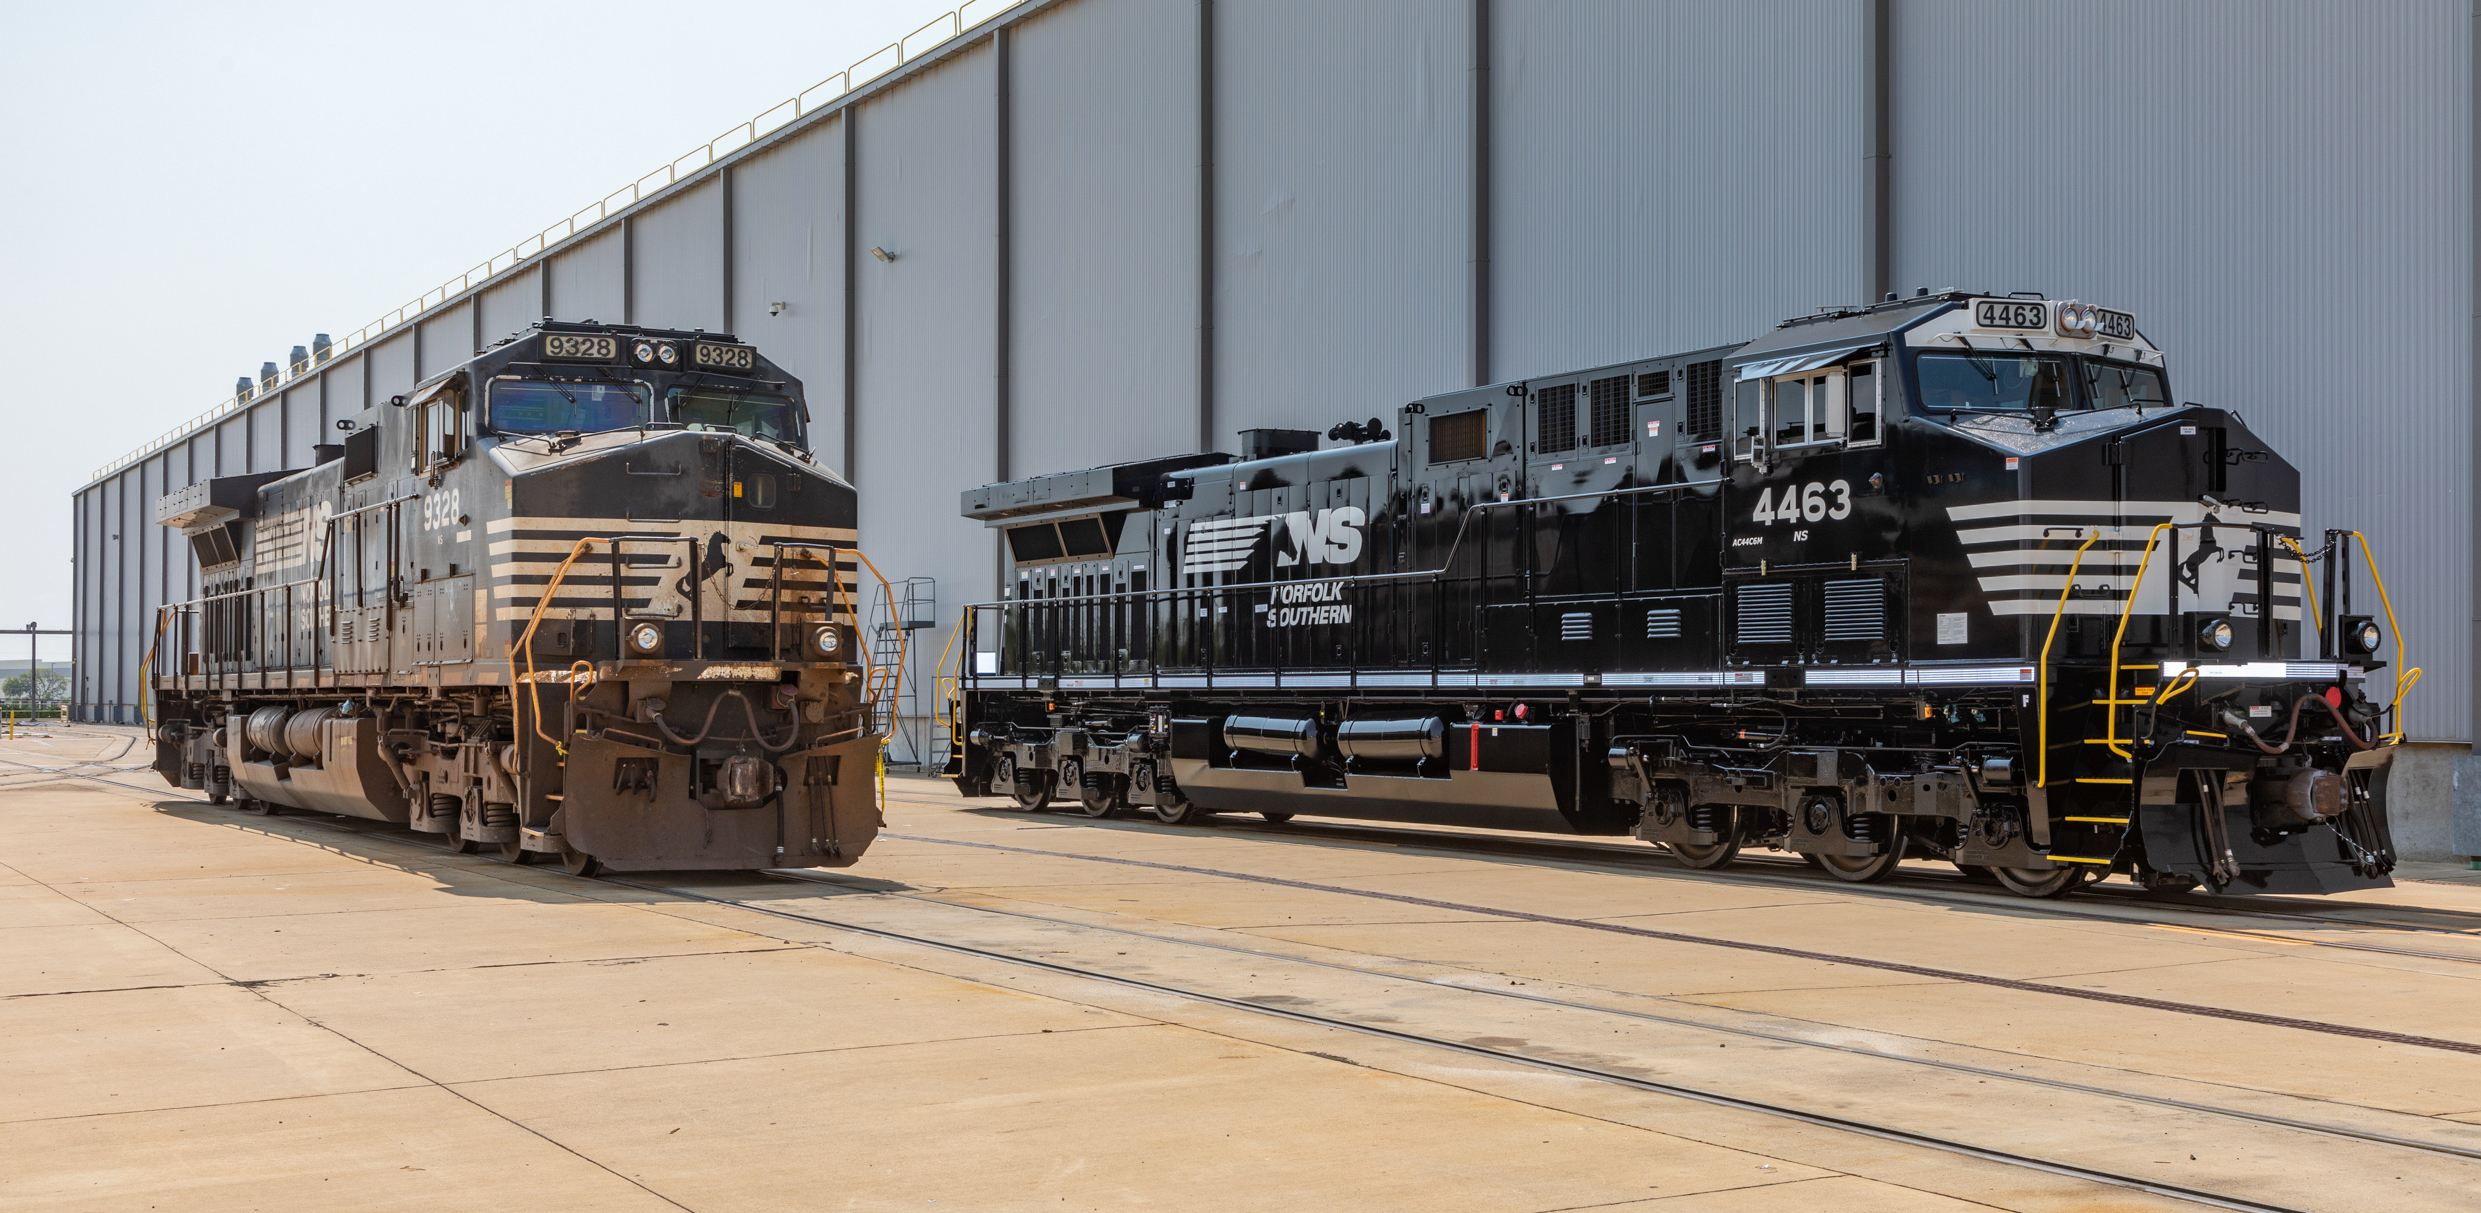 Two black locomotives, one weathered, the other new and shiny